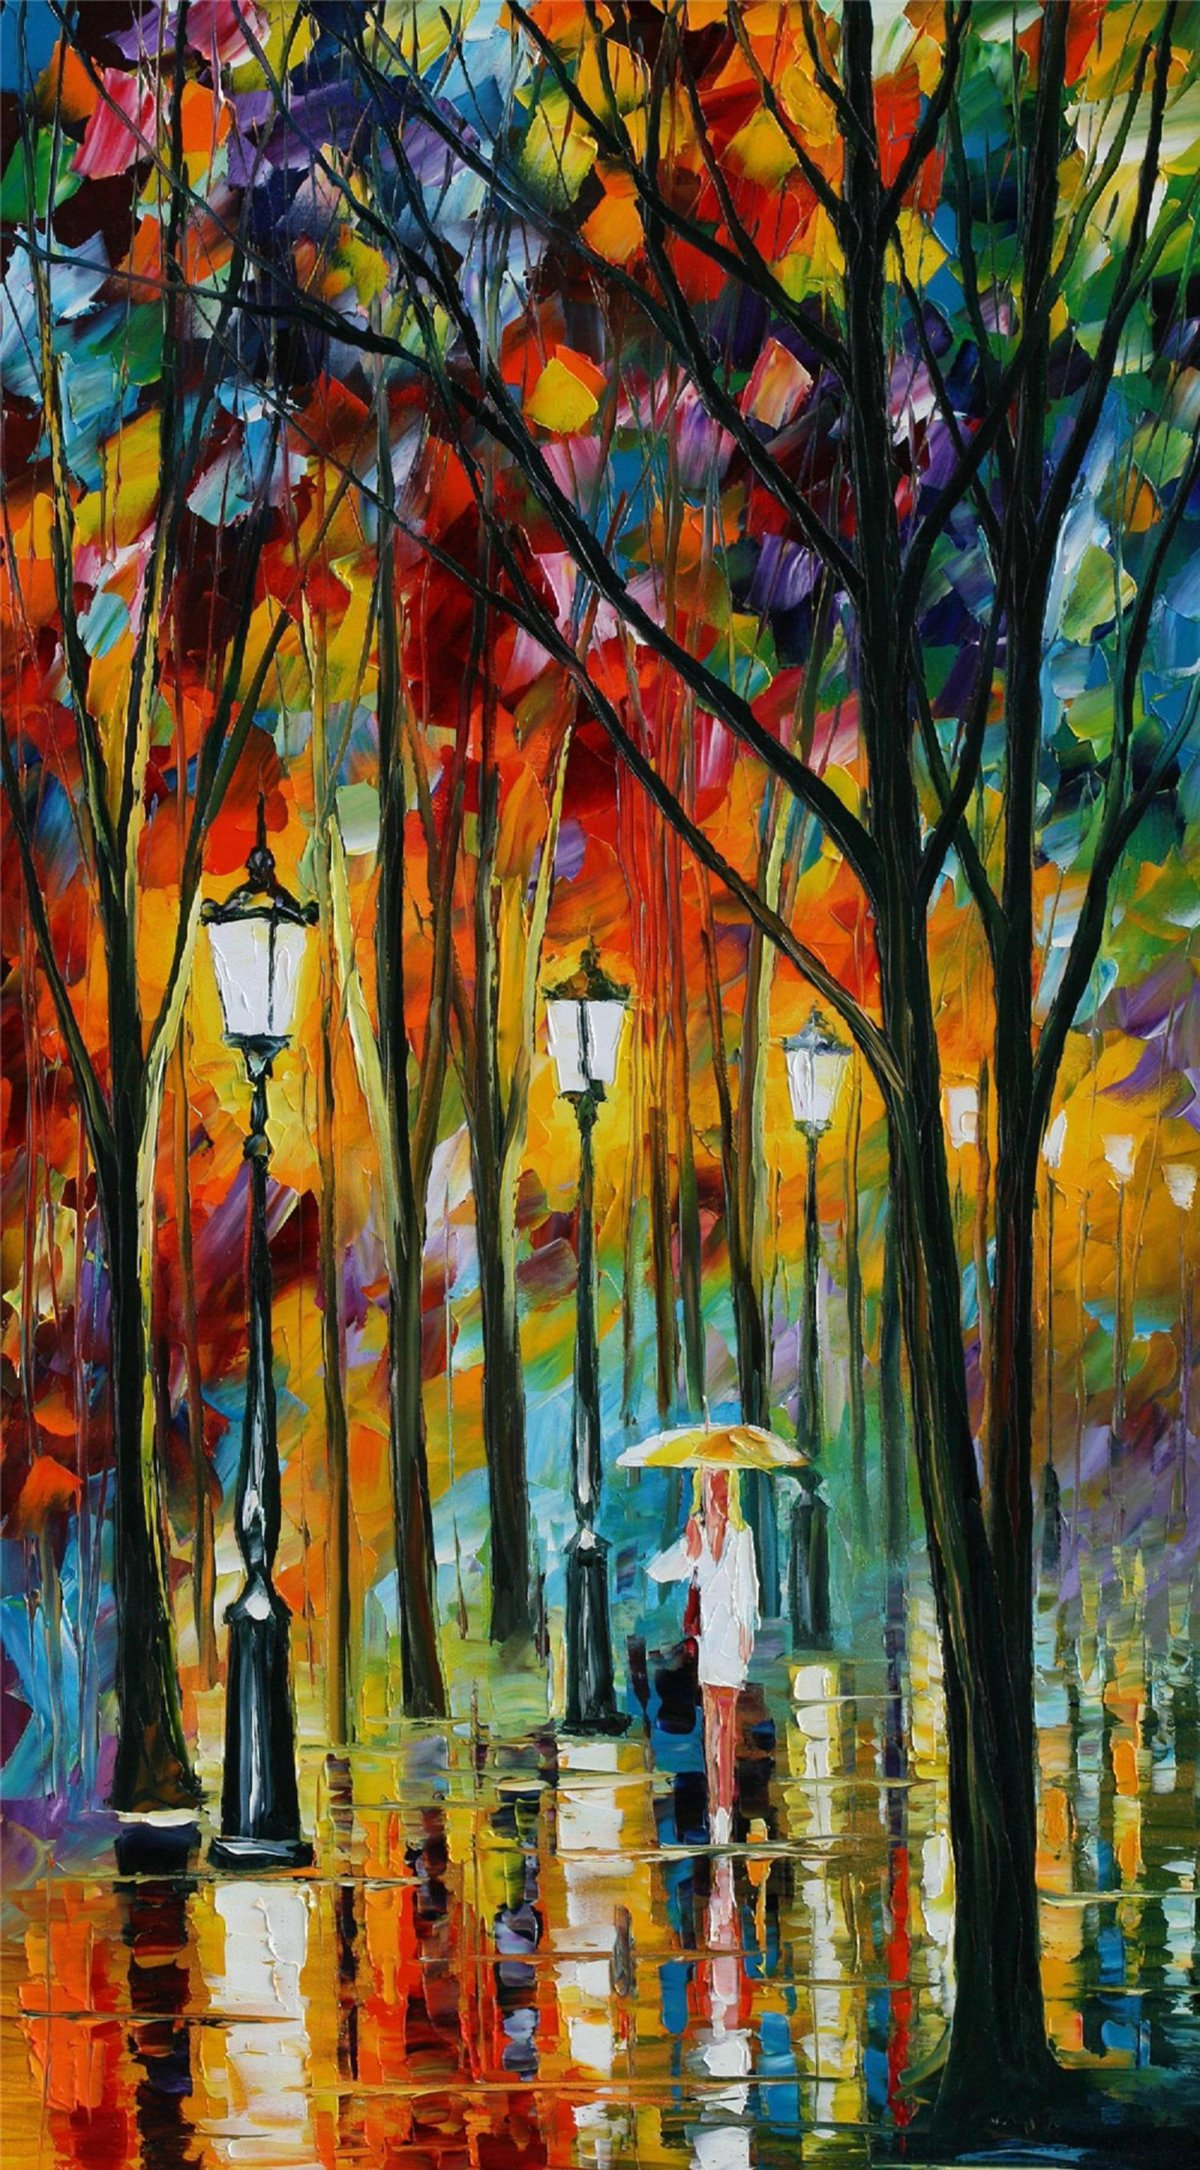 100% Hand Painted Oil Paintings Modern Abstract Oil Painting on Canvas Girl Walking in the Rain (vertical) Home Wall Decor (24X44 Inch, Oil Painting 7)